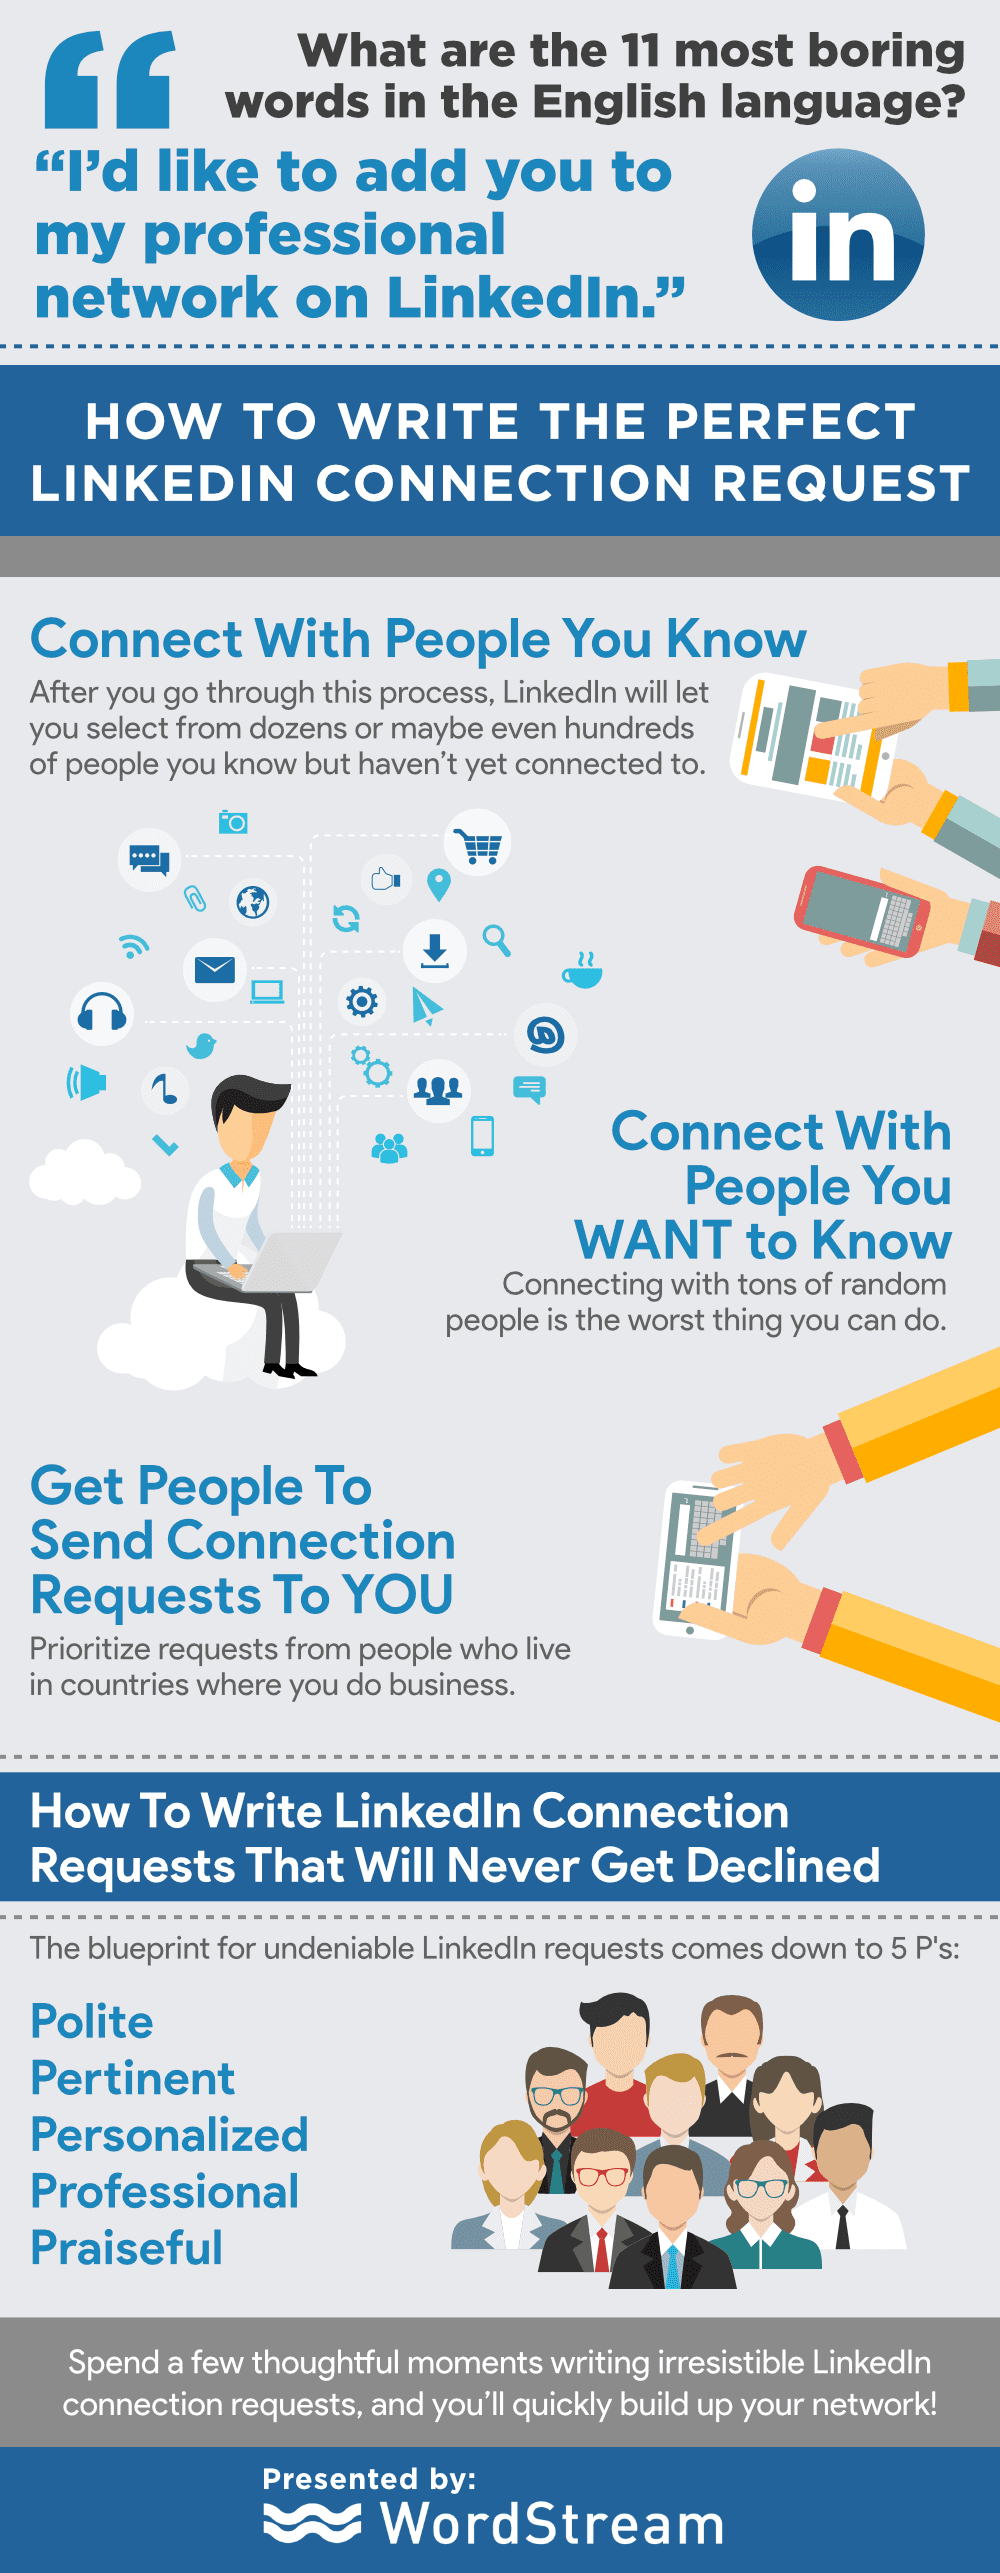 For another look at the art of writing LinkedIn connection requests, check out this great infographic.